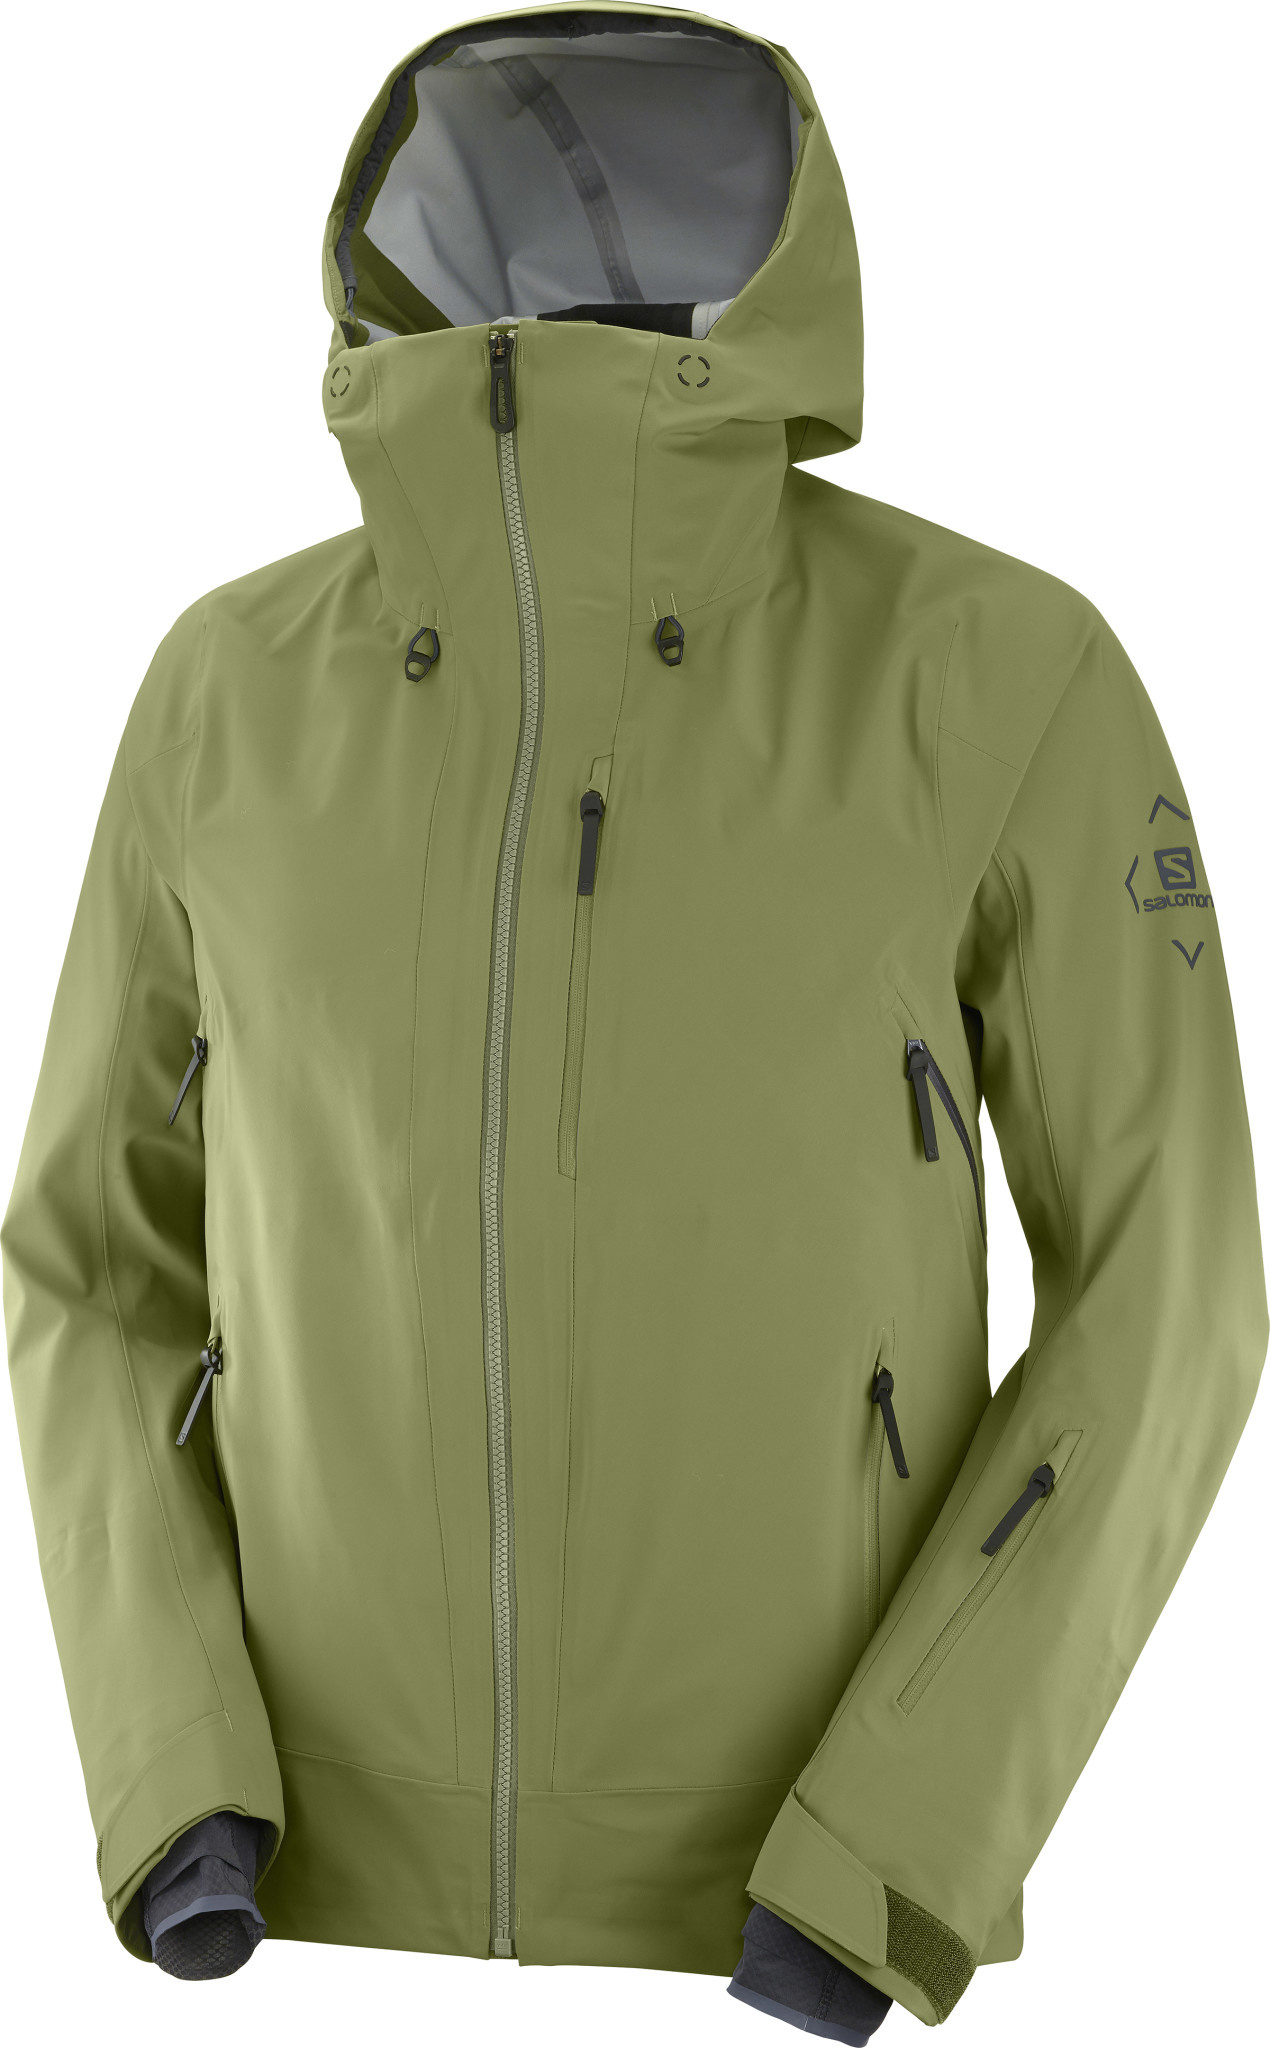 OUTLAW 3L SHELL JACKET M-2